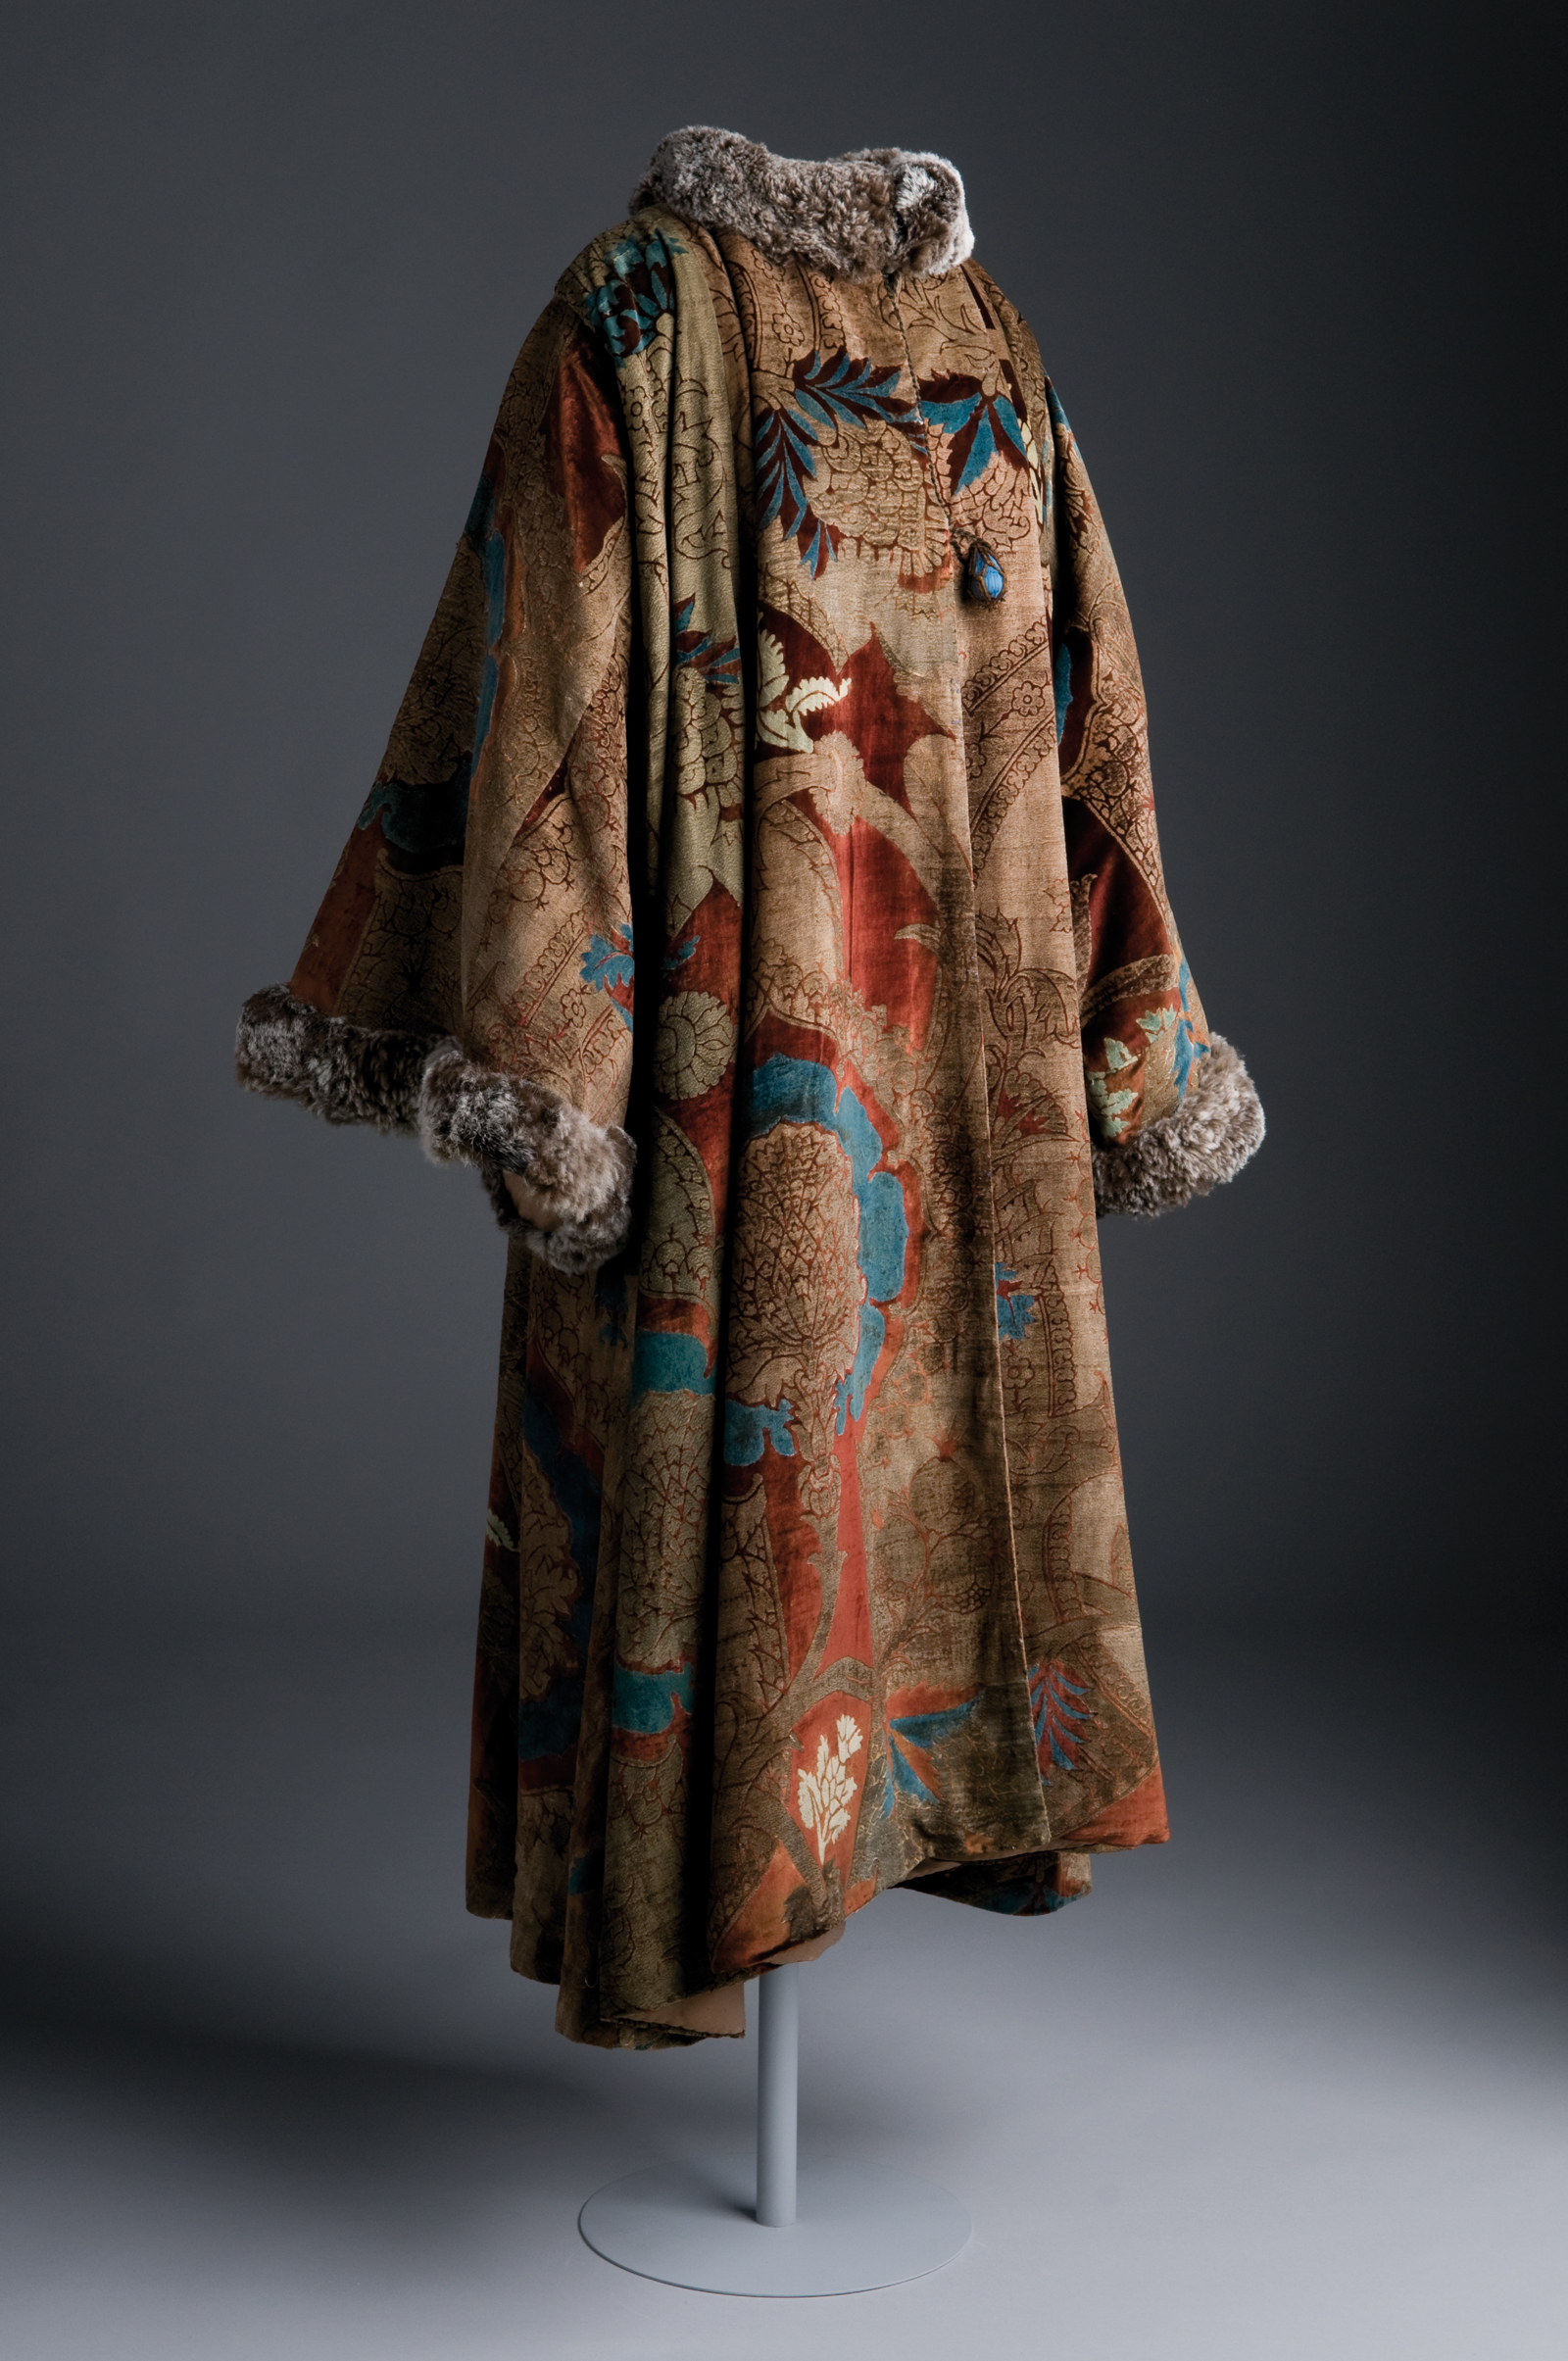 Evening Coat by Mariano Fortuny